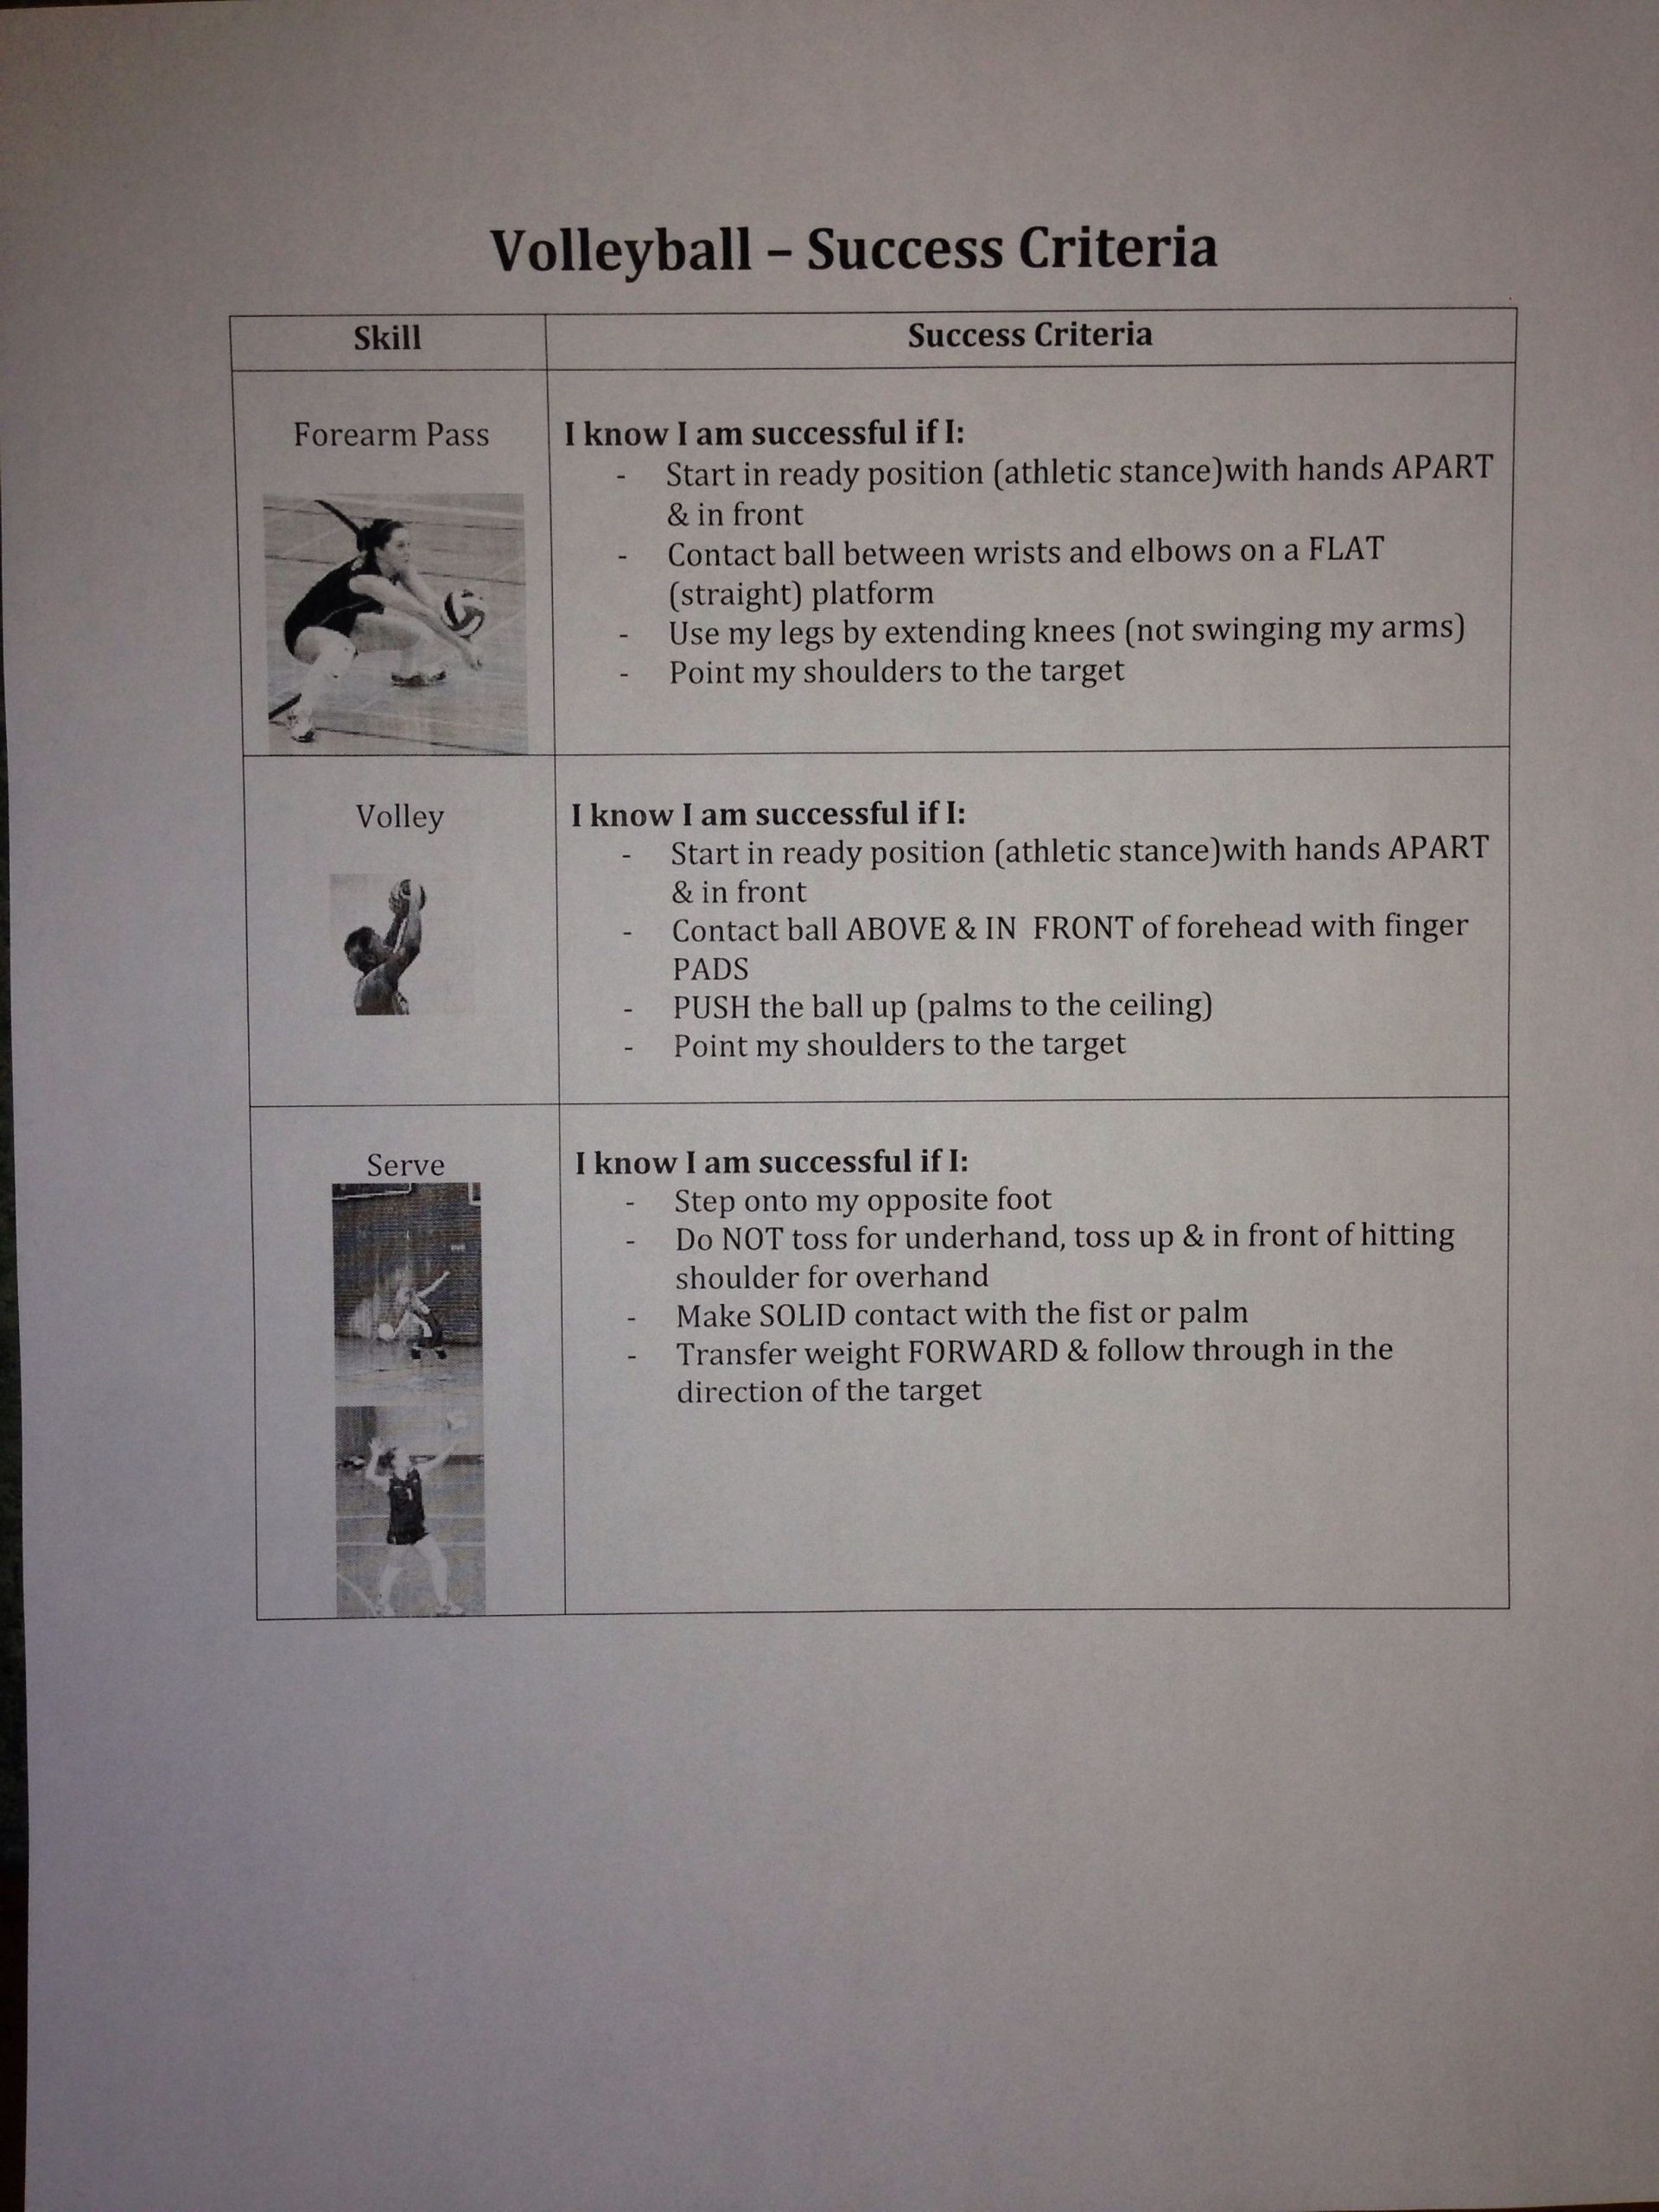 blank sports physical form  Success criteria checklist for assessing volleyball skills ..